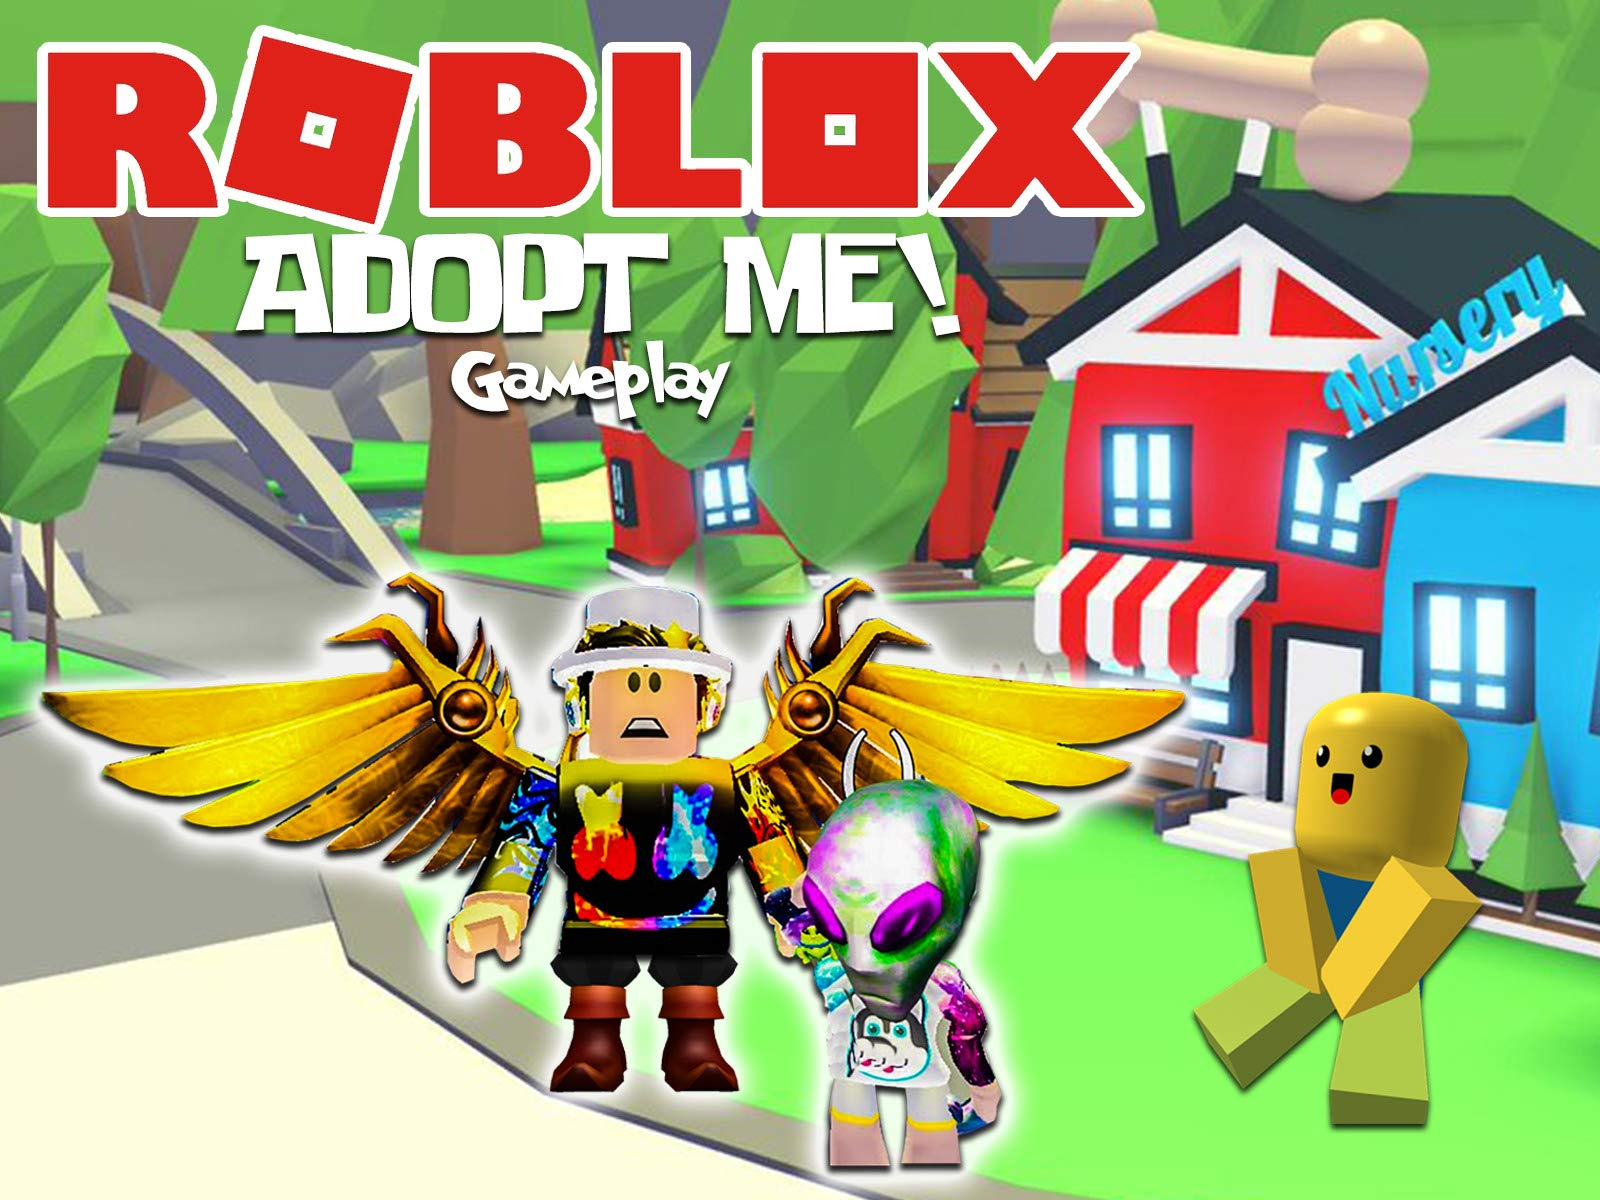 Meganplays Roblox Adopt Me Outfit Watch Clip Roblox Adopt Me Gameplay Prime Video